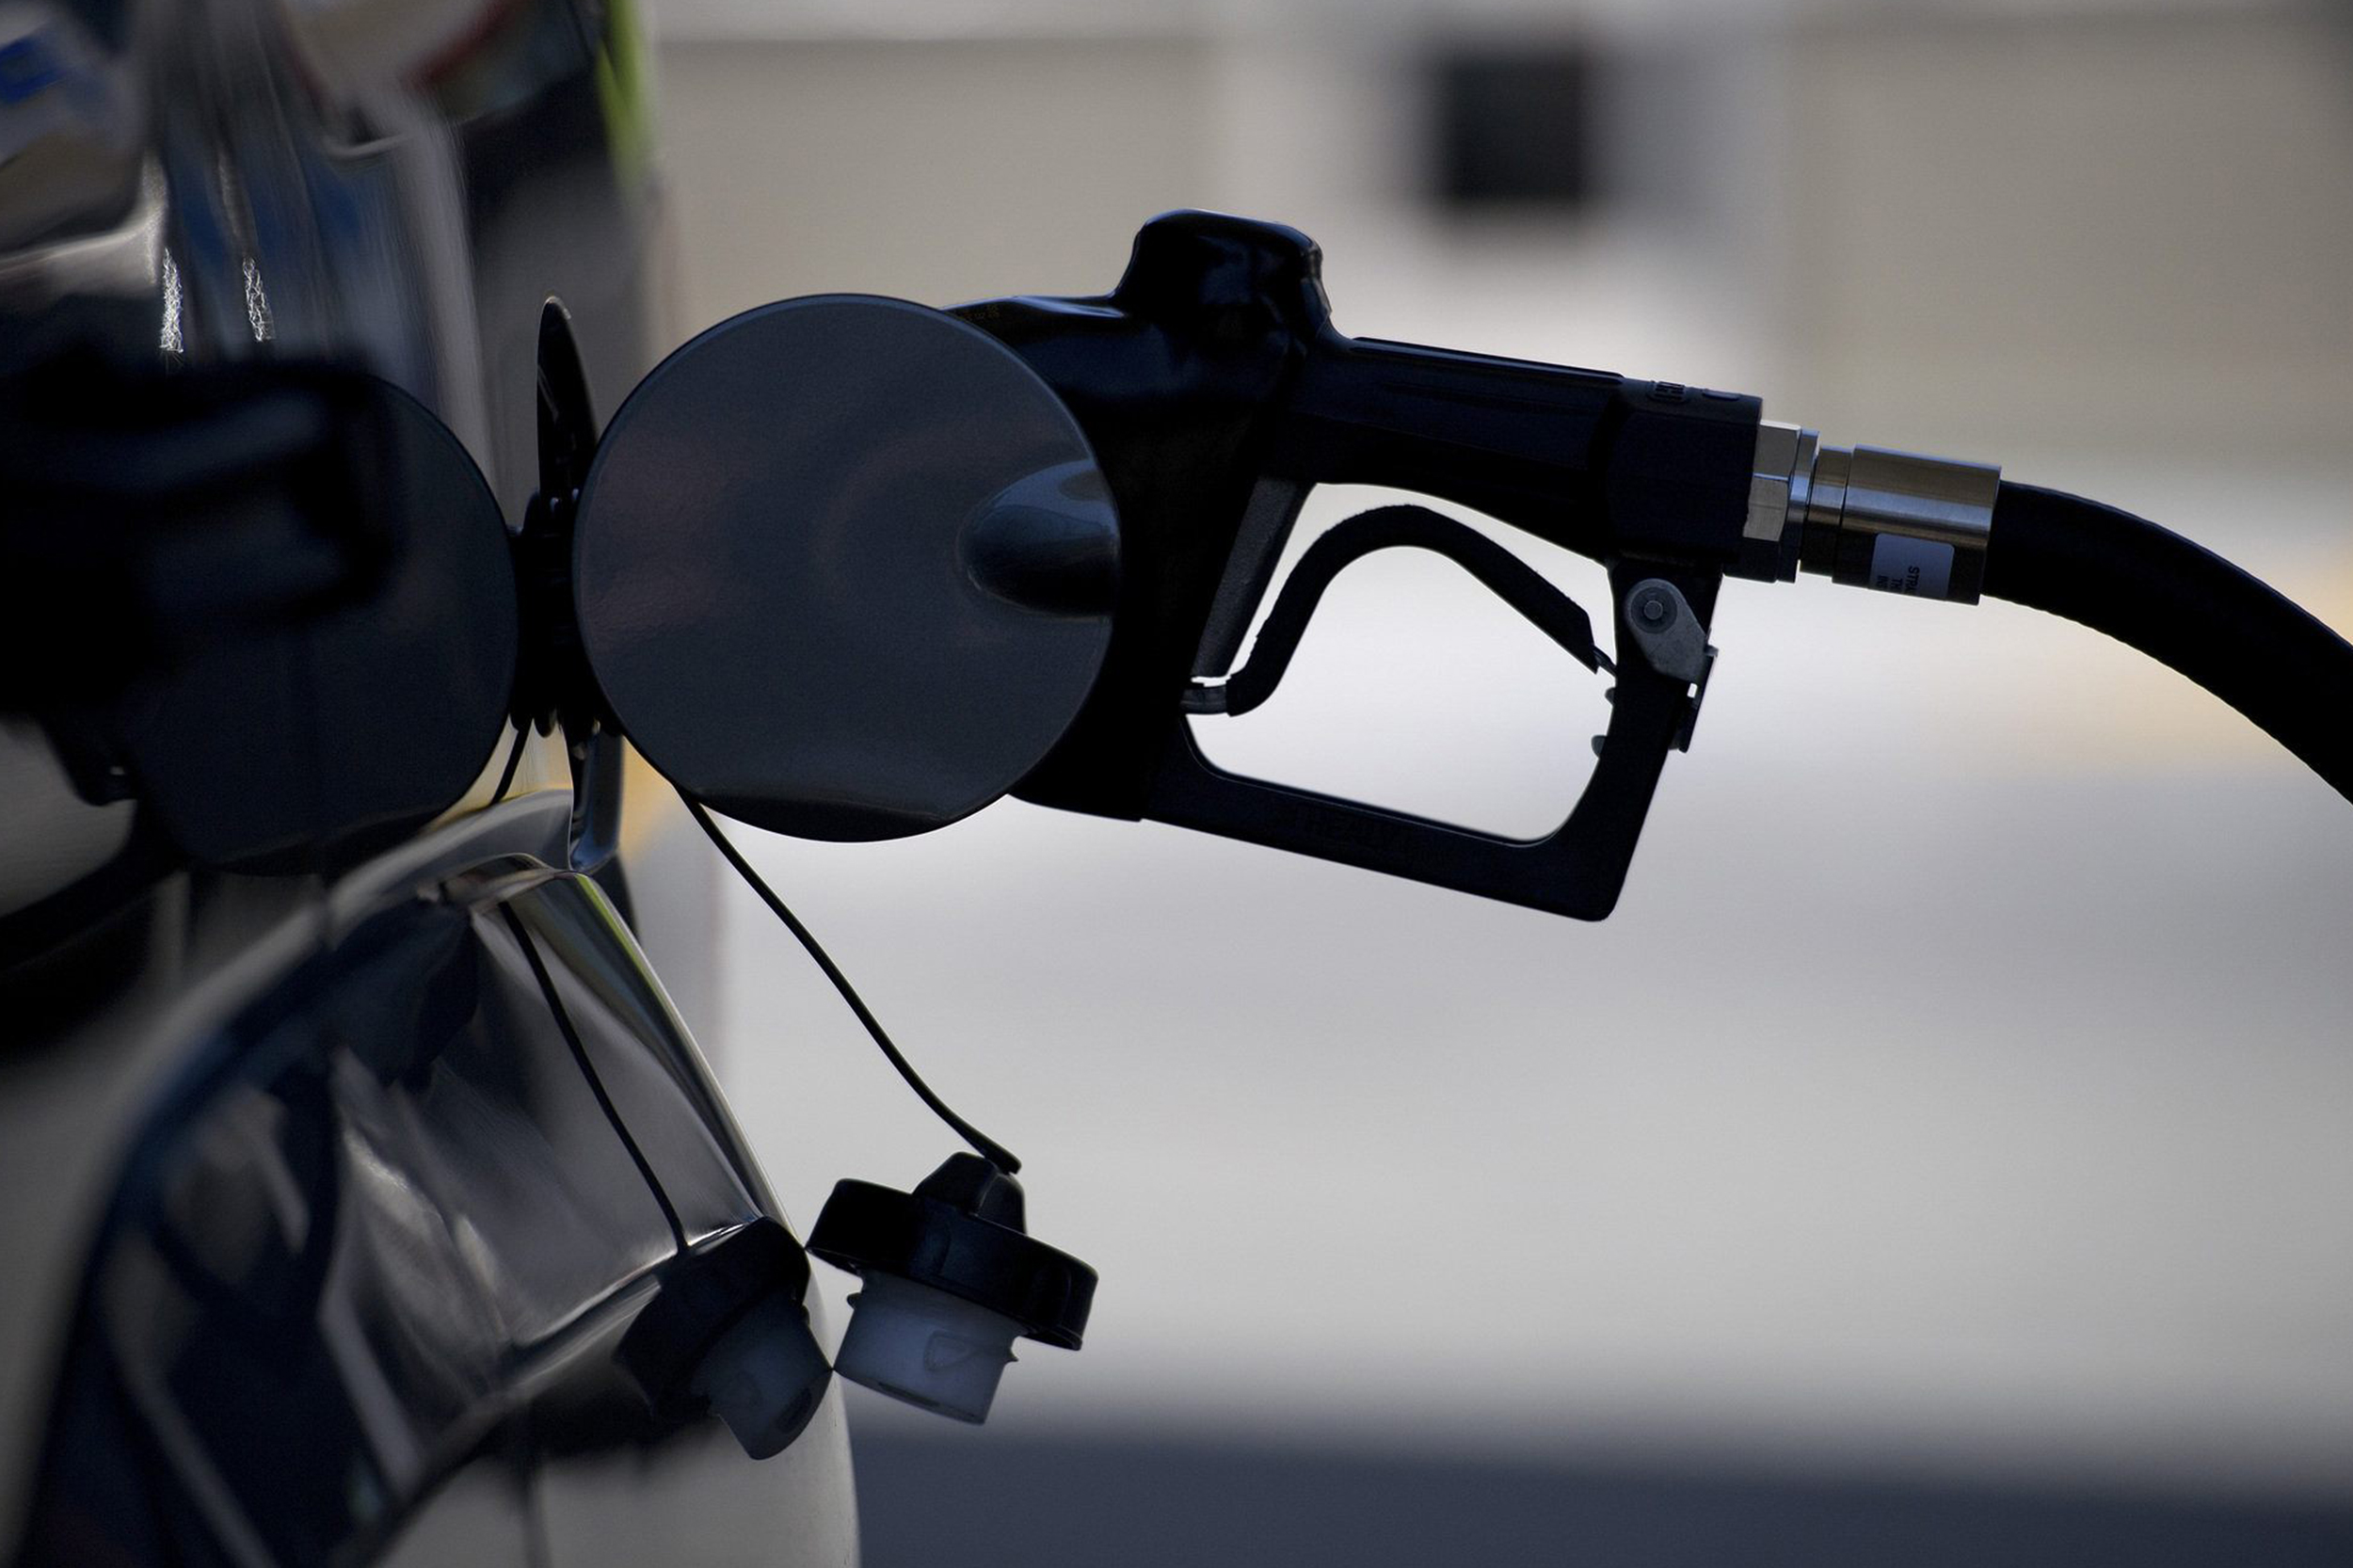 Fuel sales have dropped significantly